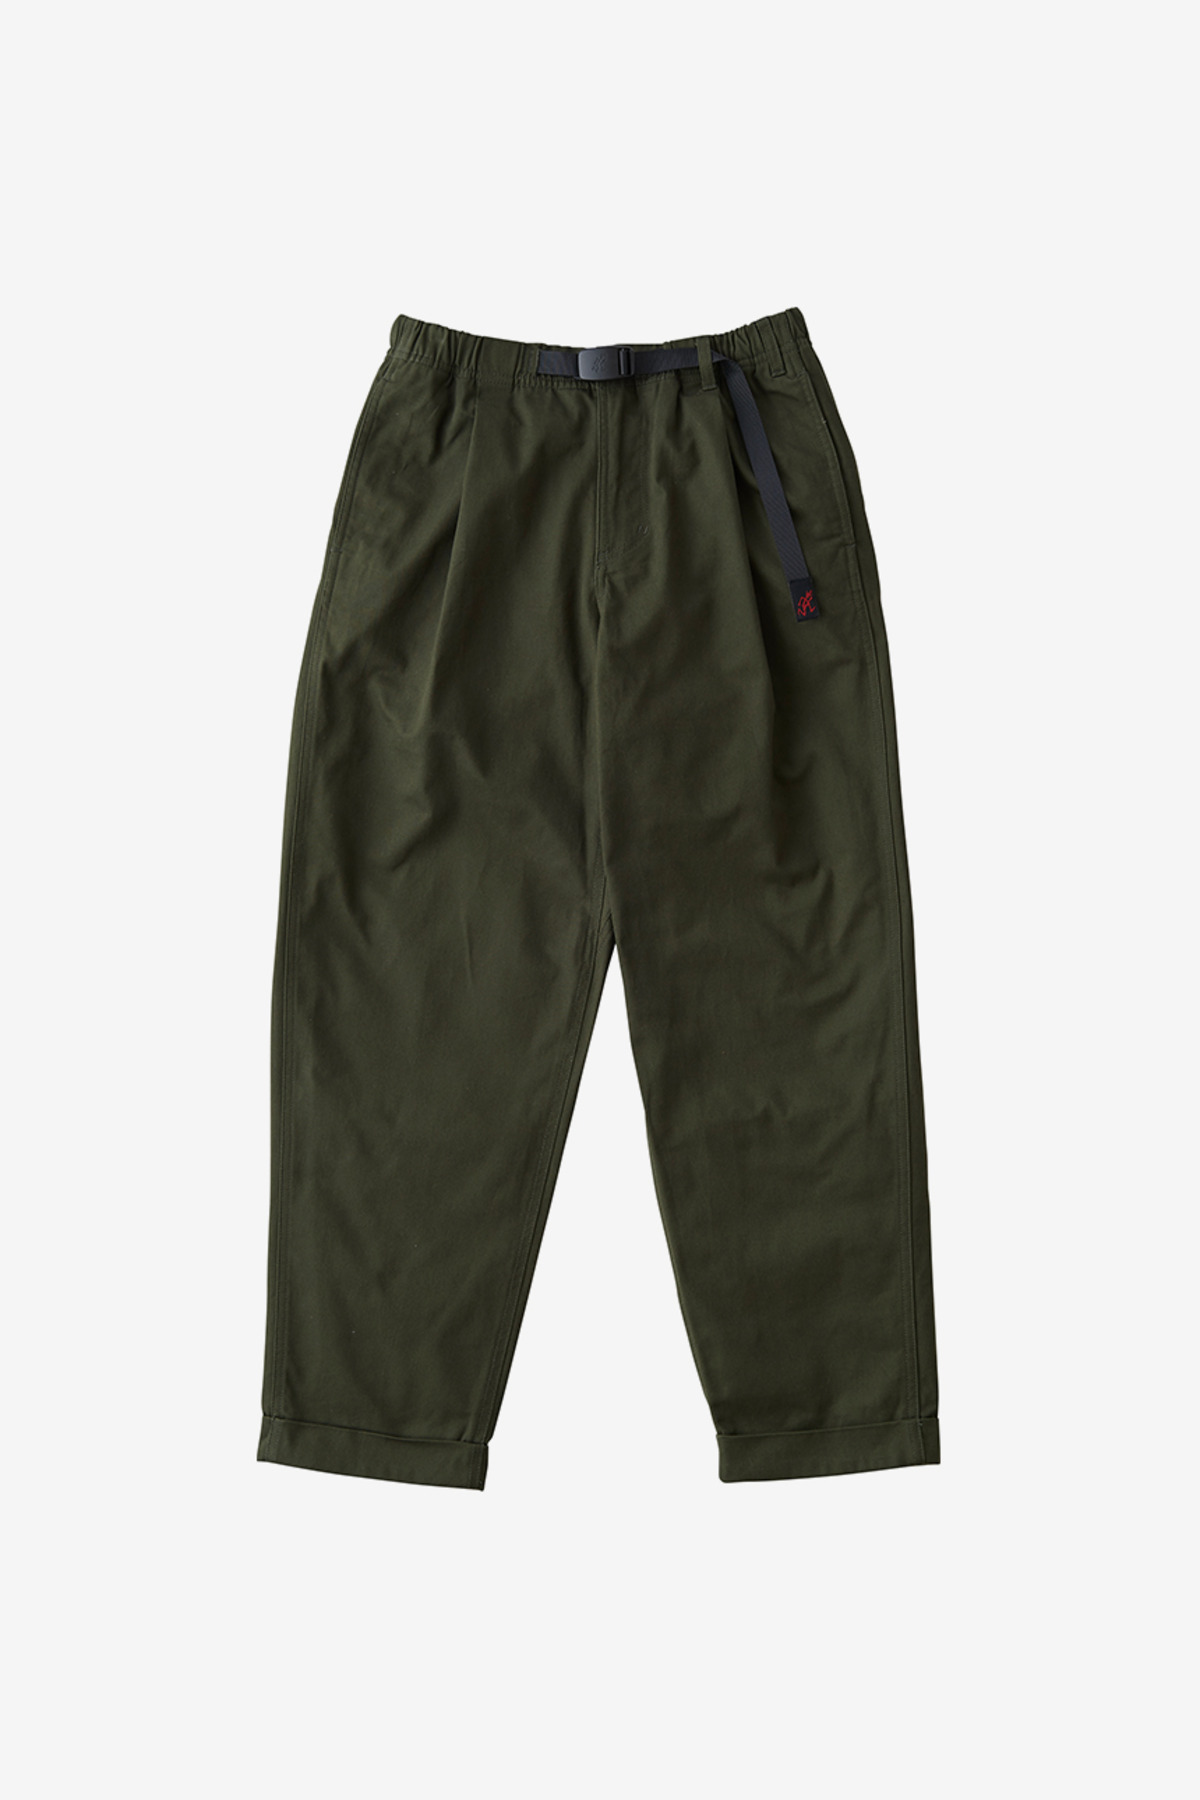 BACK SATIN TUCK TAPERED PANTS DEEP OLIVE